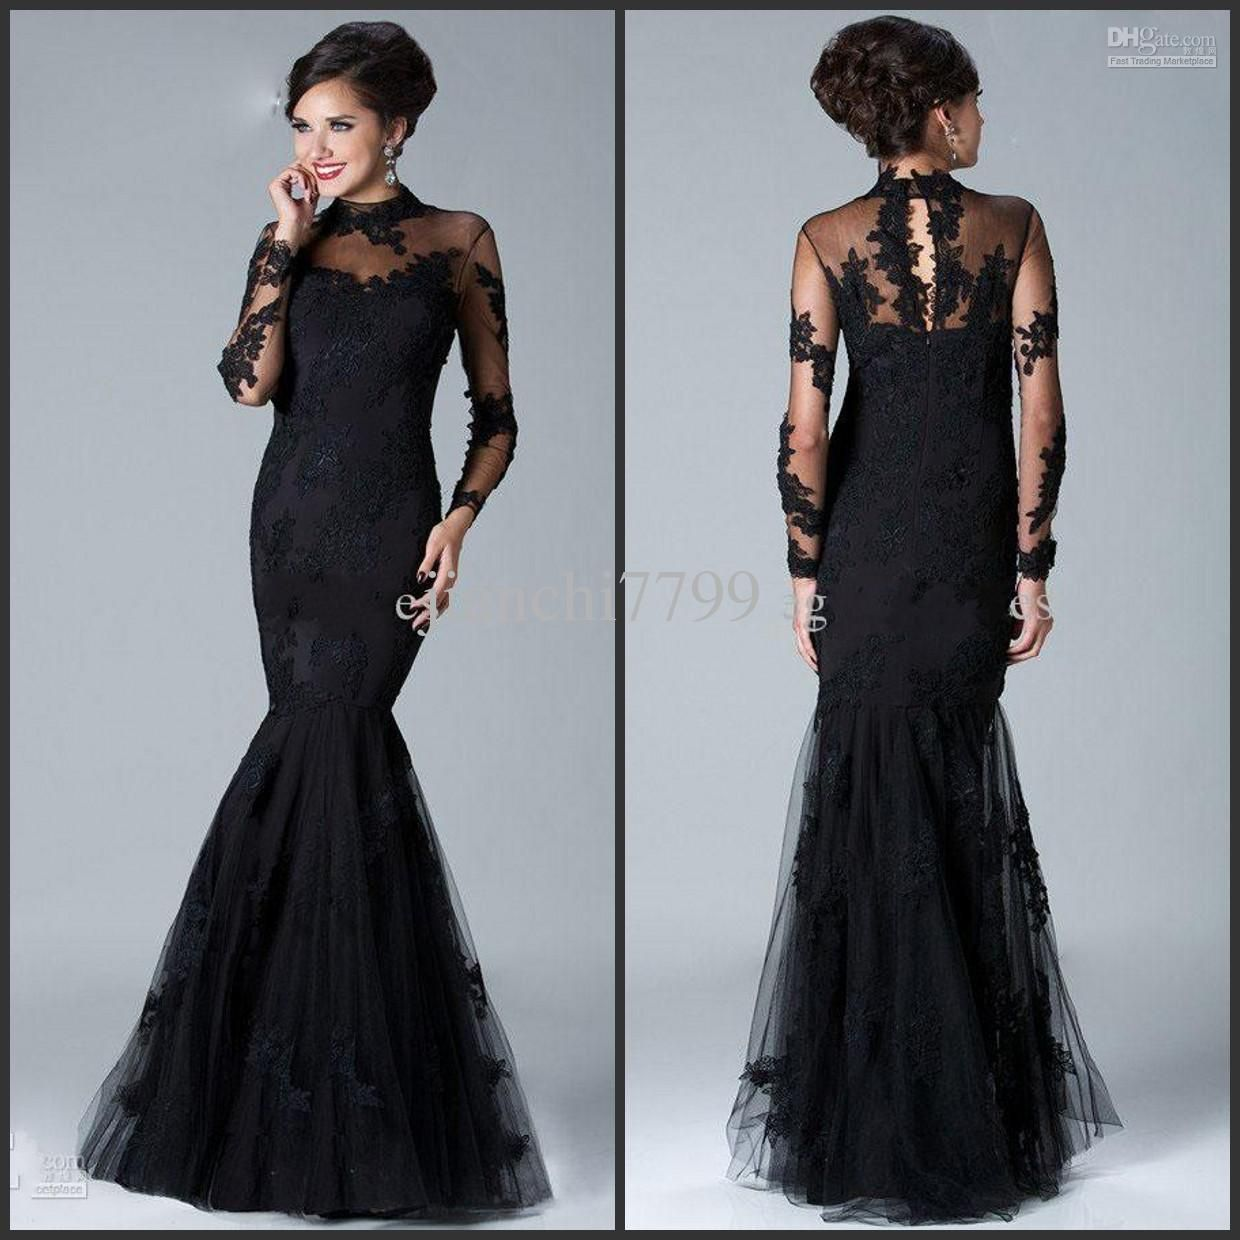 Wholesale Evening Dresses - Buy 2014 New Arrival Charming Black High Neck Long Sleeve Mermaid Tulle Floor Length Pageant Evening/ Party Dress AB692, $162.0 | DHgate